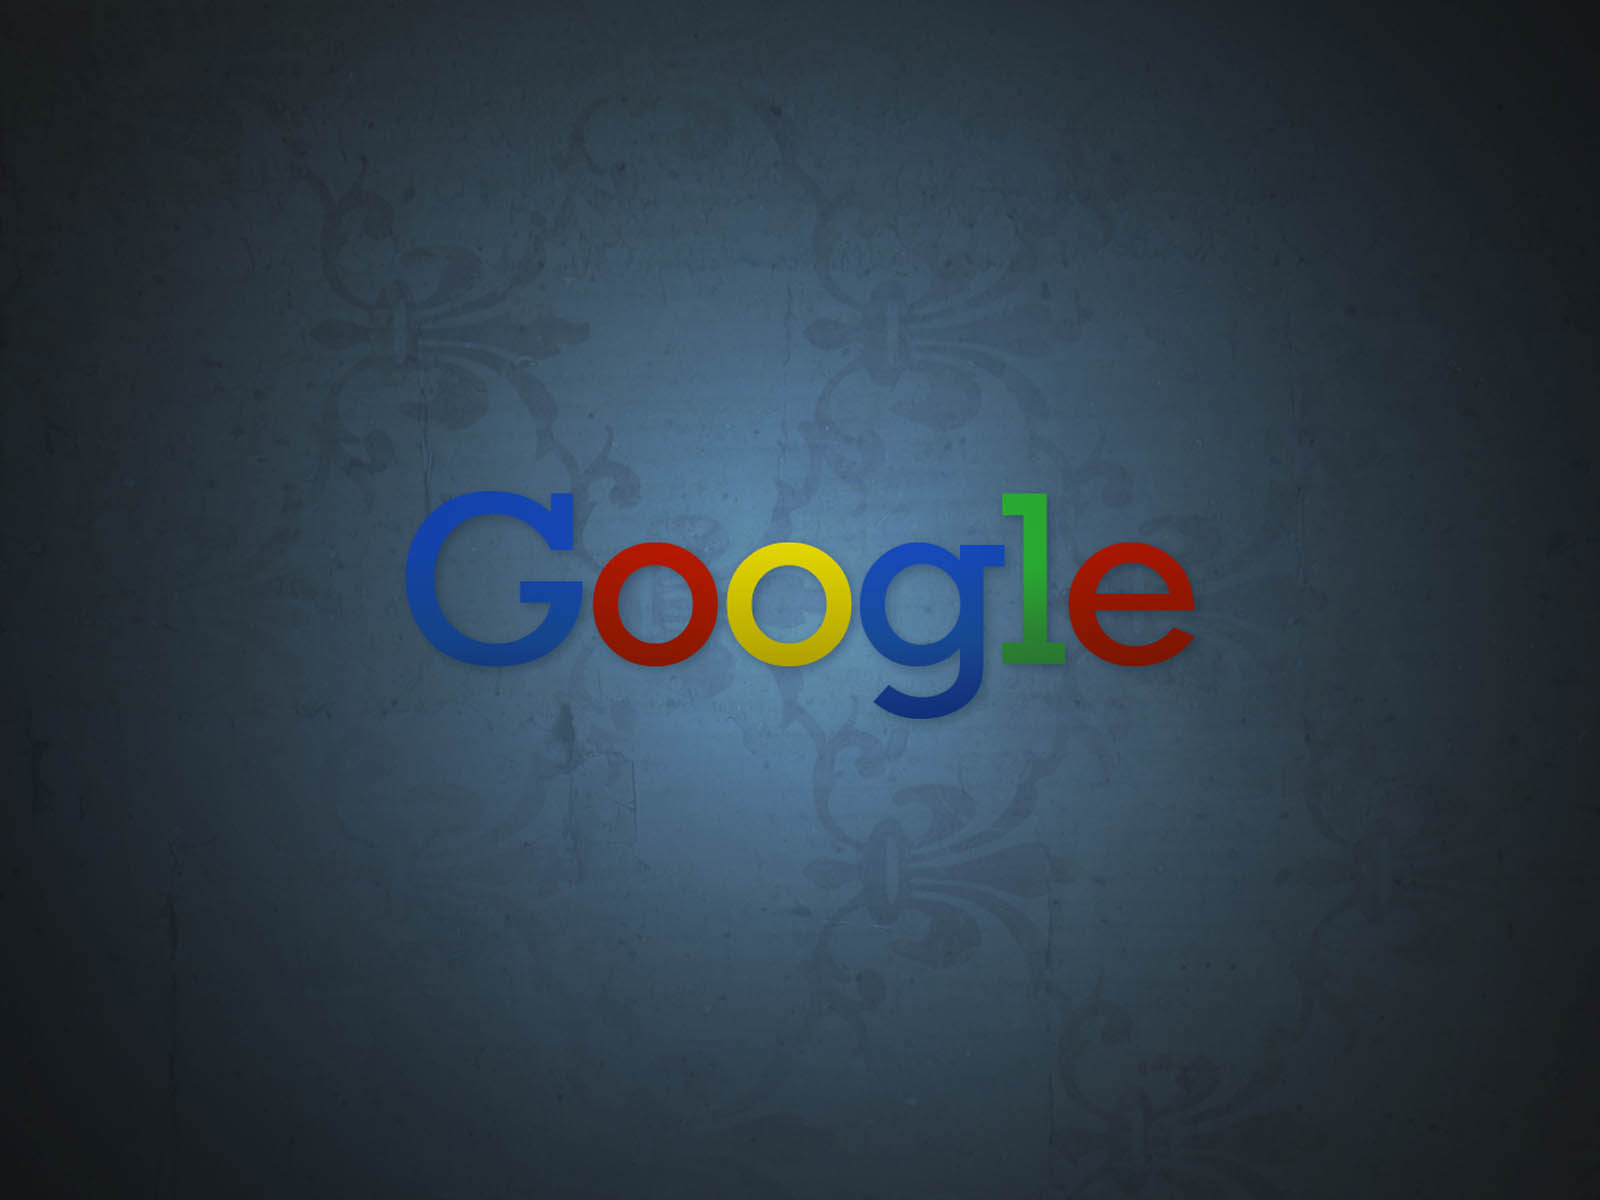 google-hd-wallpaper-picture.jpg